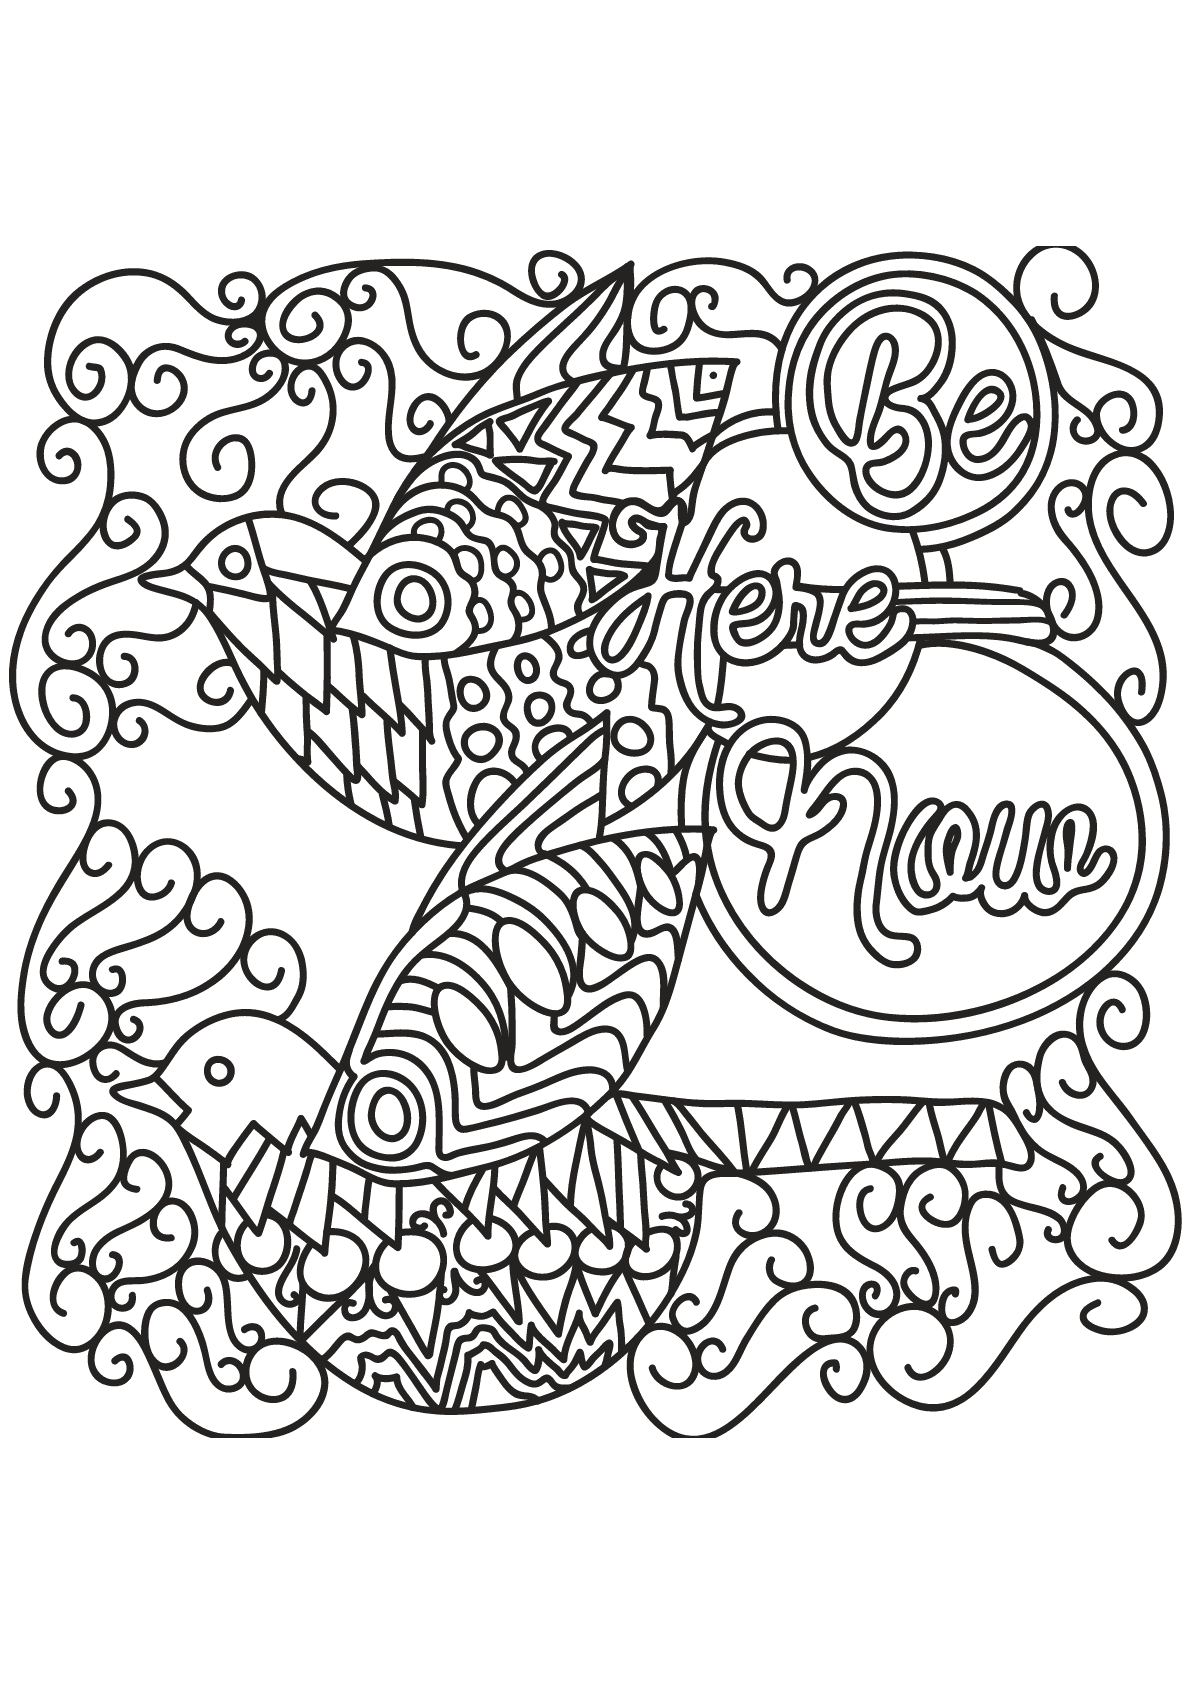 quotes image=quotes coloring free book quote 16 1